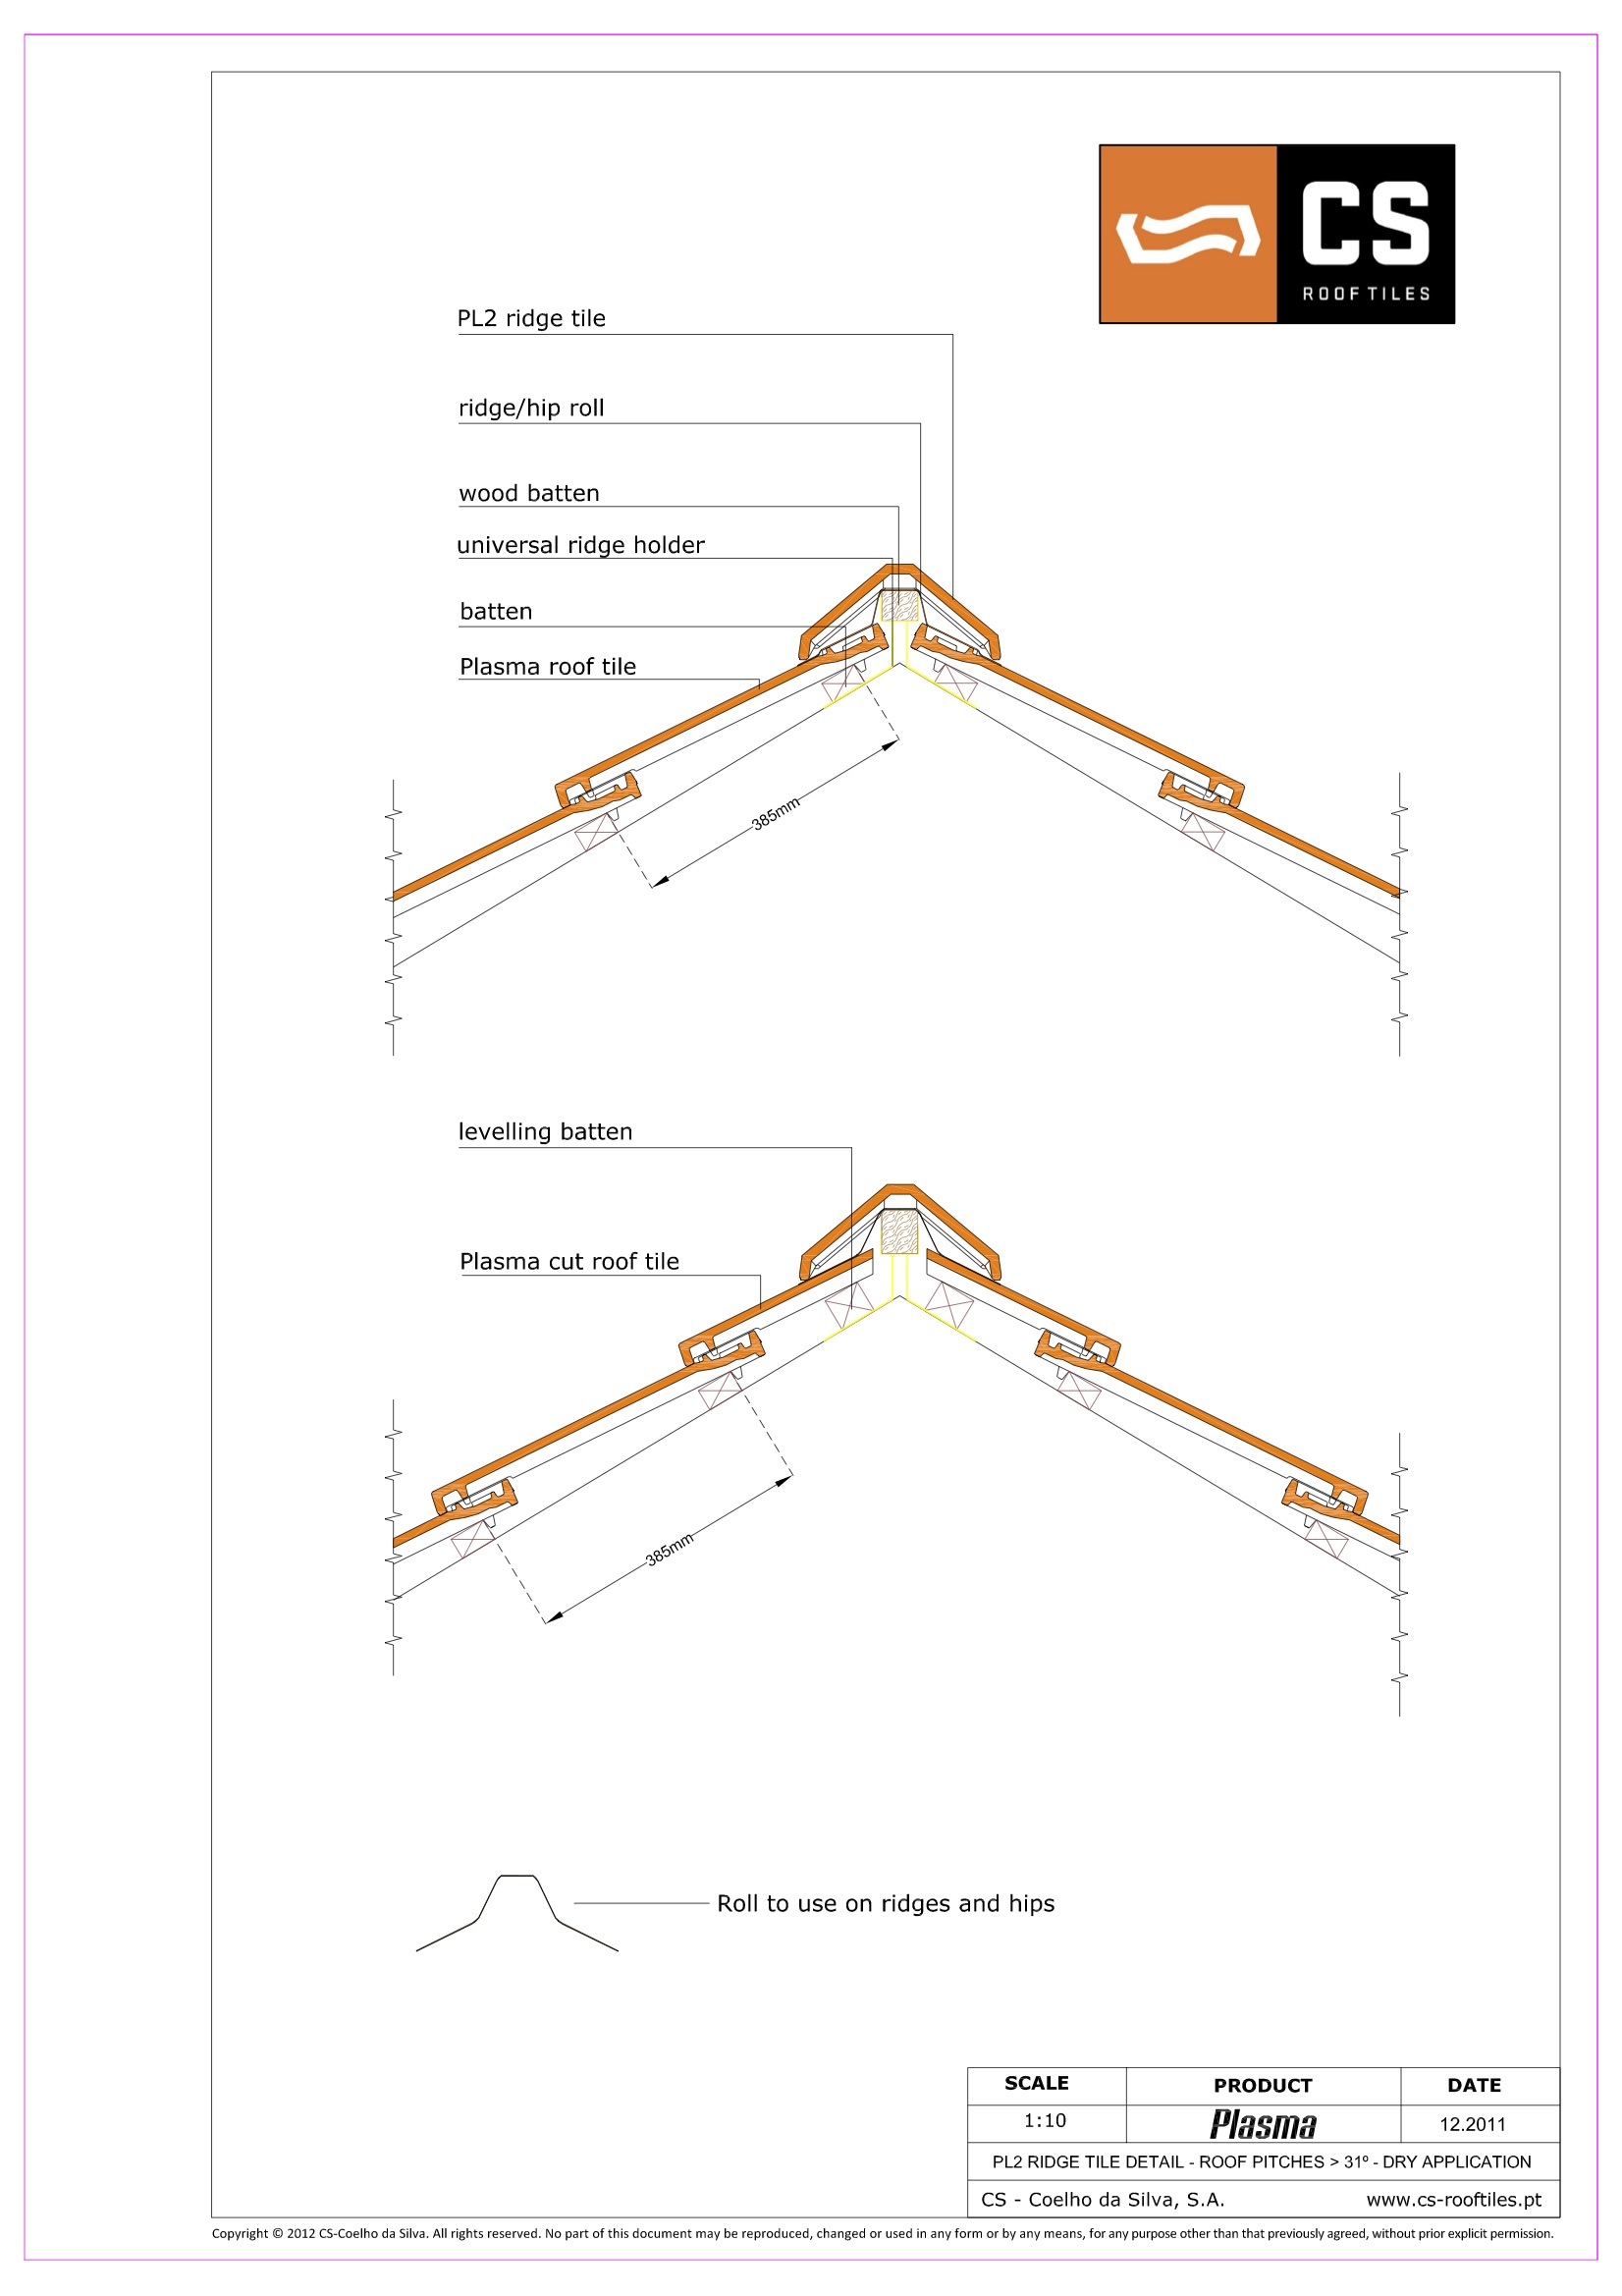 Galex CS PL2 ridge tile technical drawing for fixing options